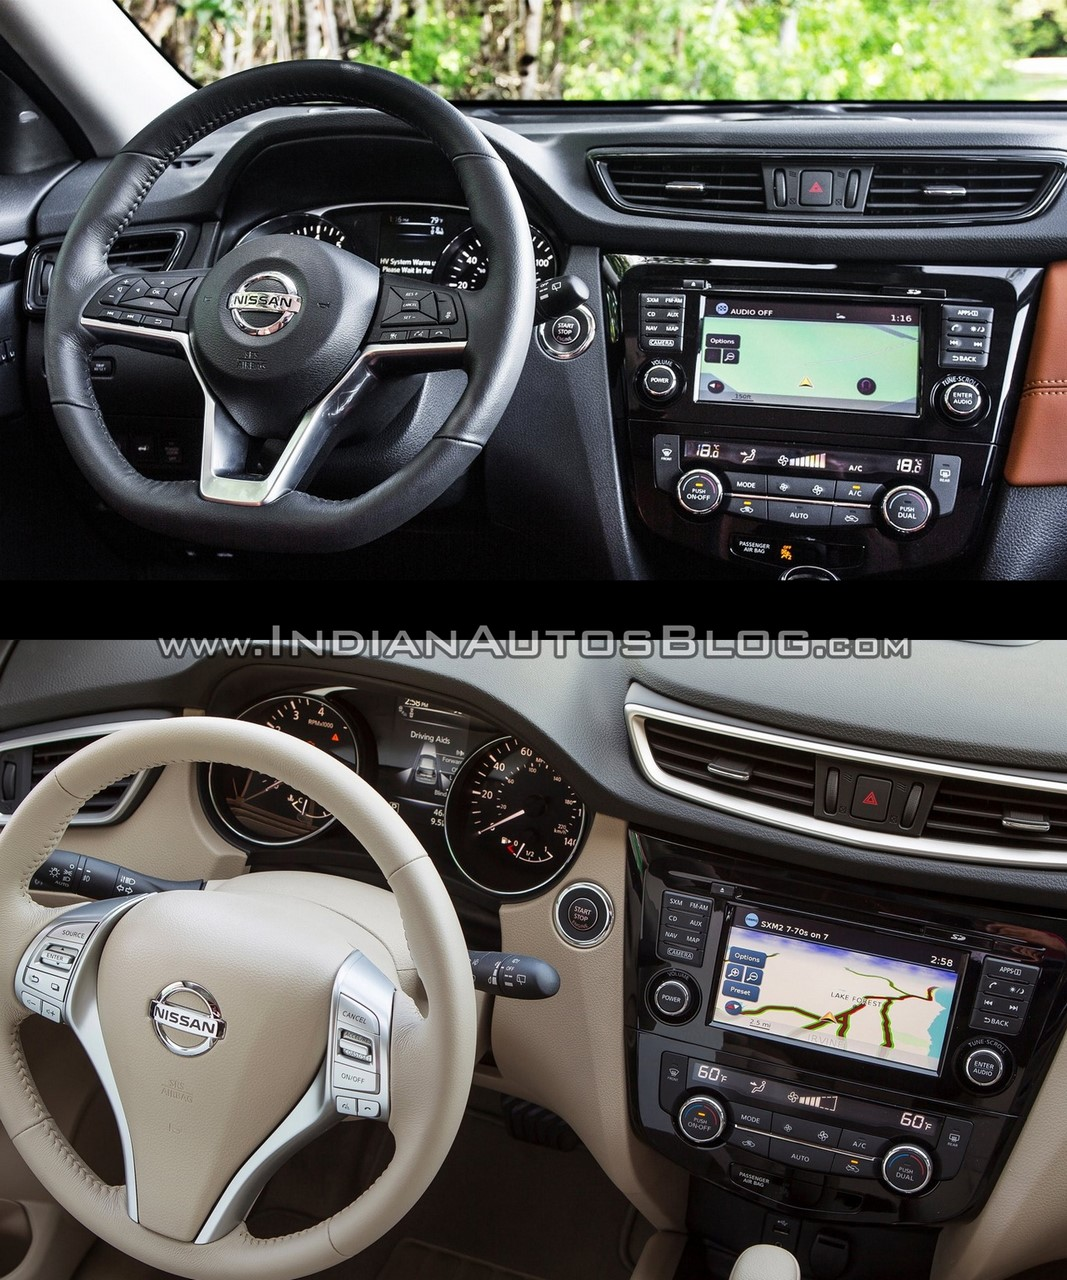 2017 Nissan Rogue Facelift Vs 2014 Nissan Rogue Image Gallery Interior Dashboard Driver Side